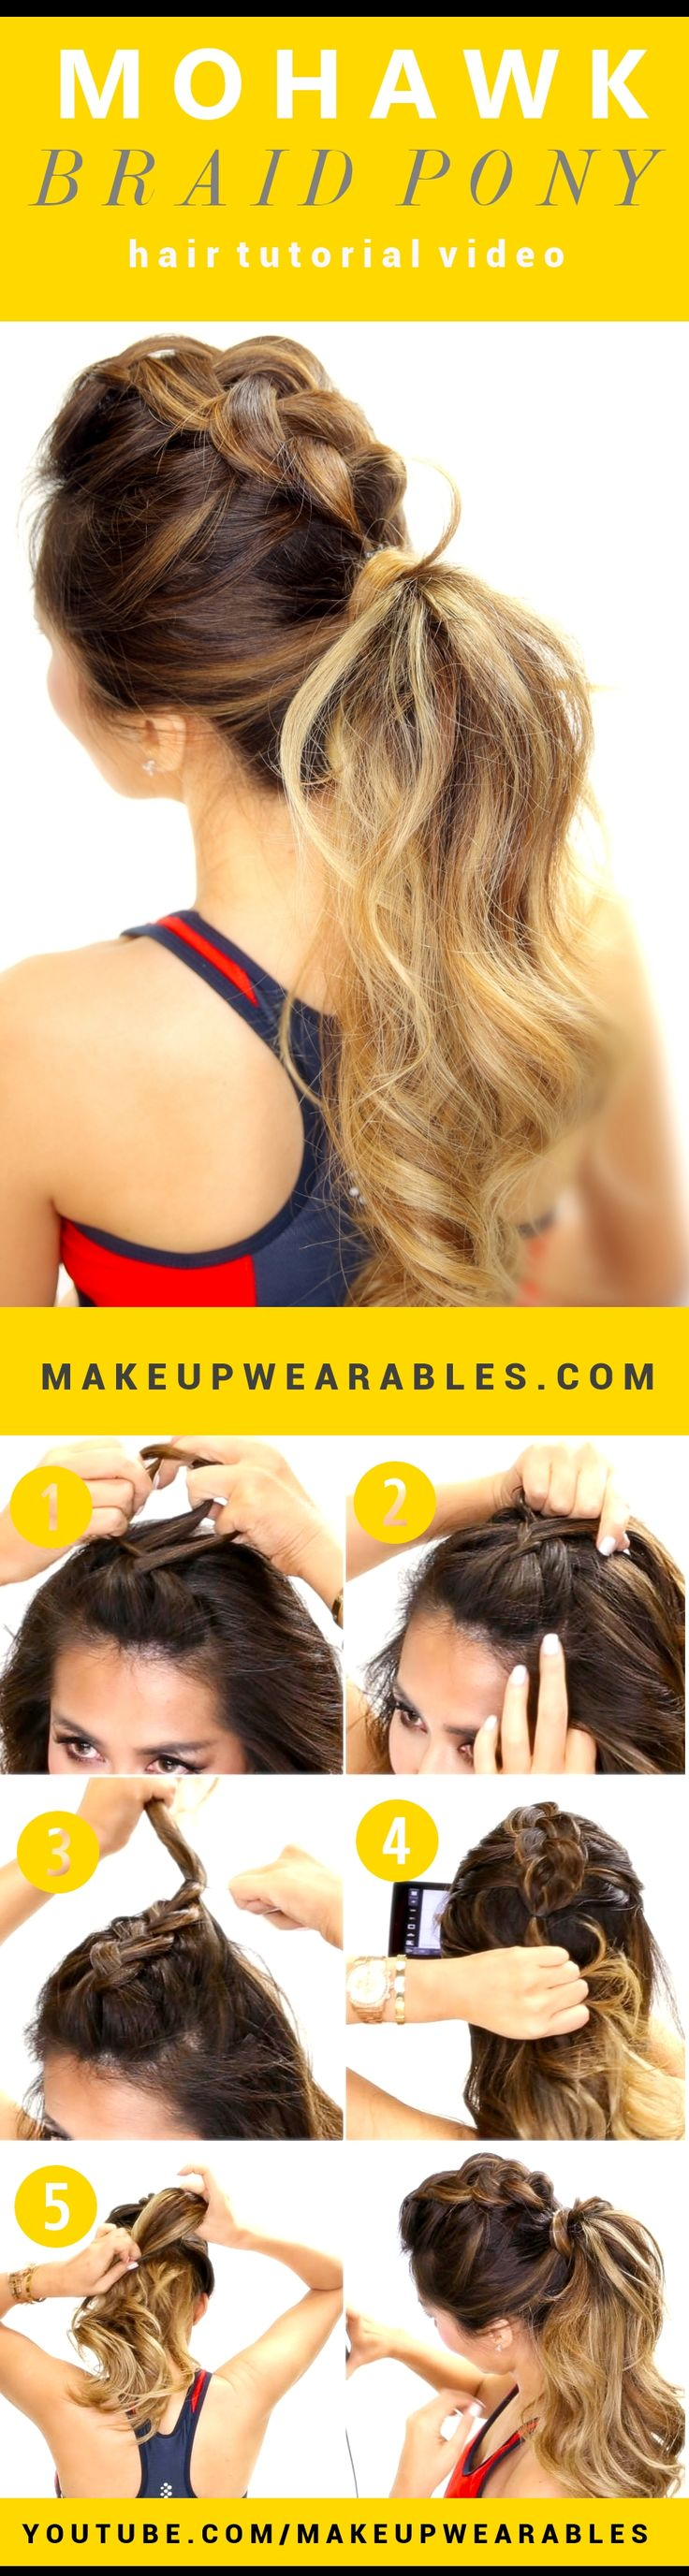 Mohawk Braid Ponytail Hairstyle | Braided Look